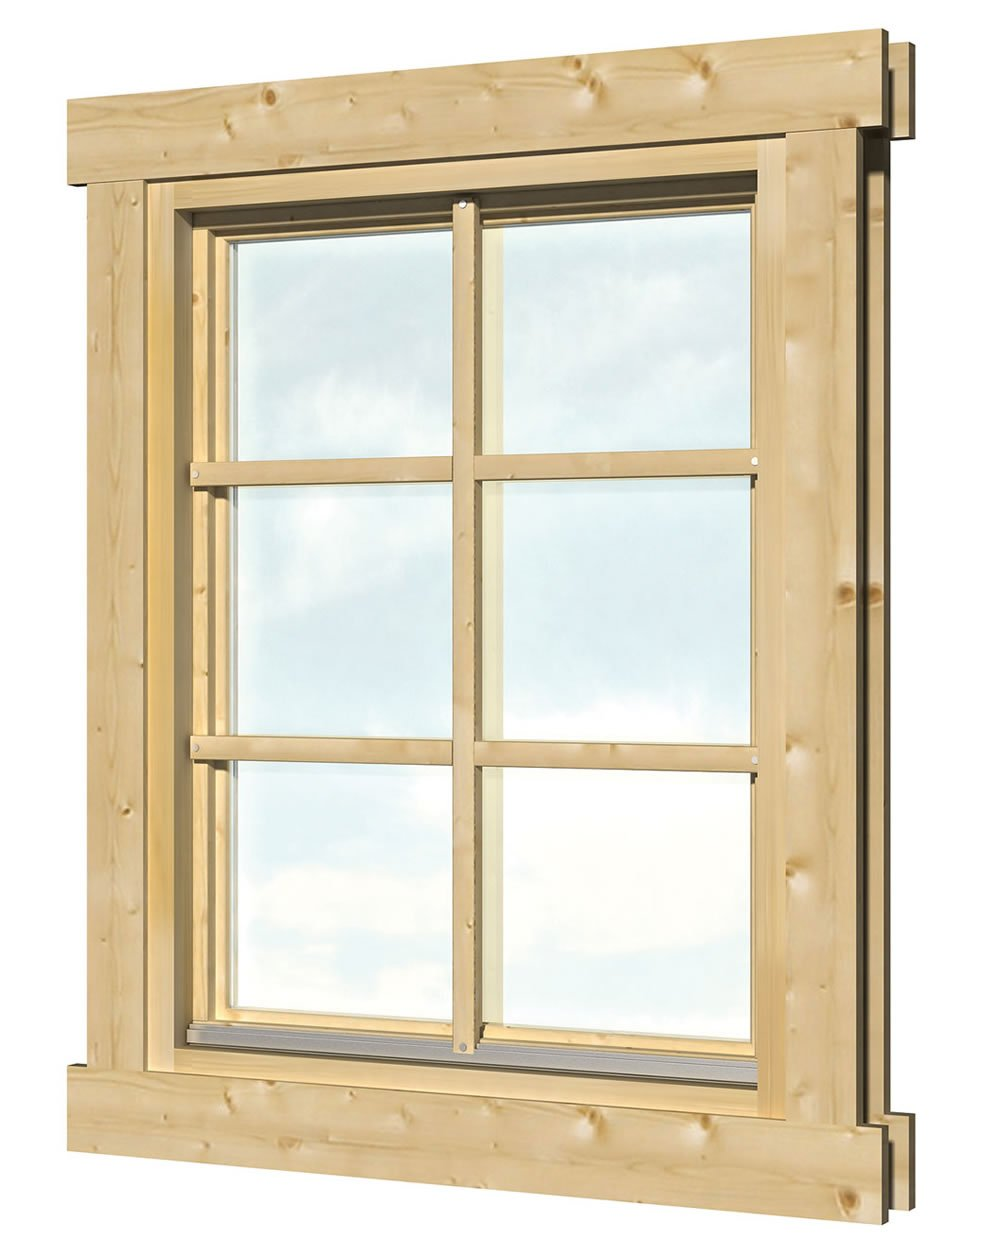 Double Glazed Windows For Log Cabins